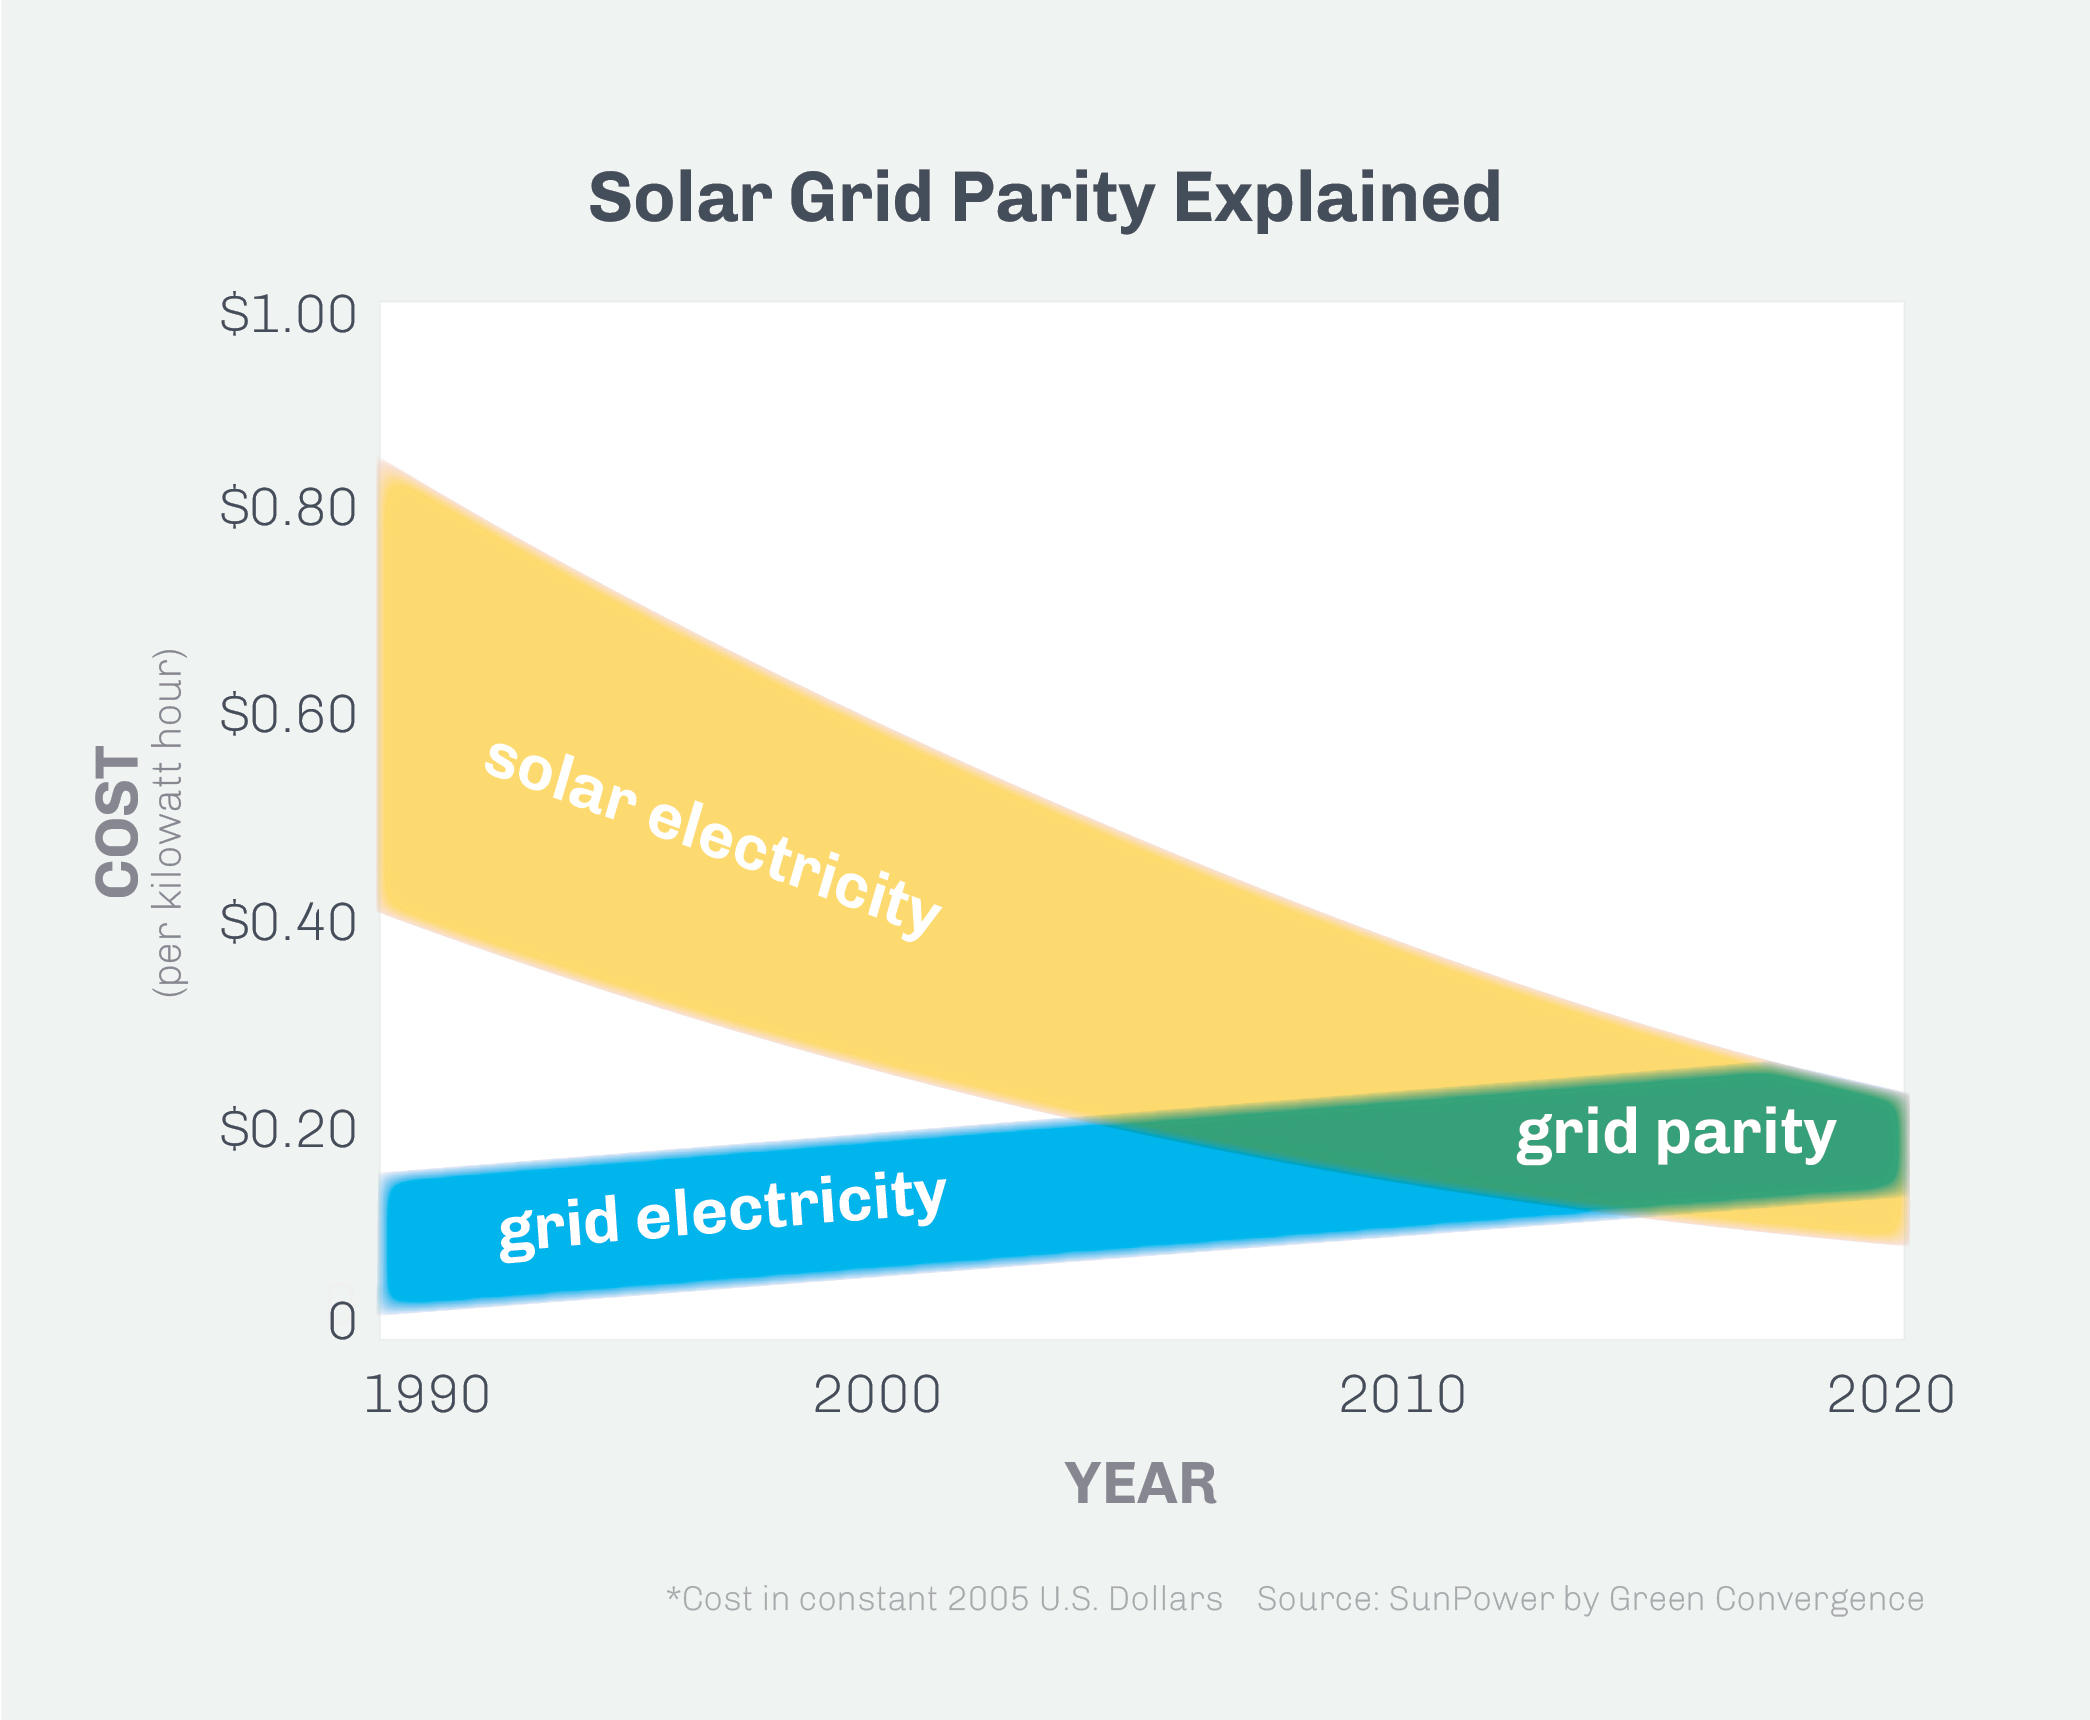 Cost U Less >> What is 'grid parity'? | U.S. Embassy & Consulates in South Africa